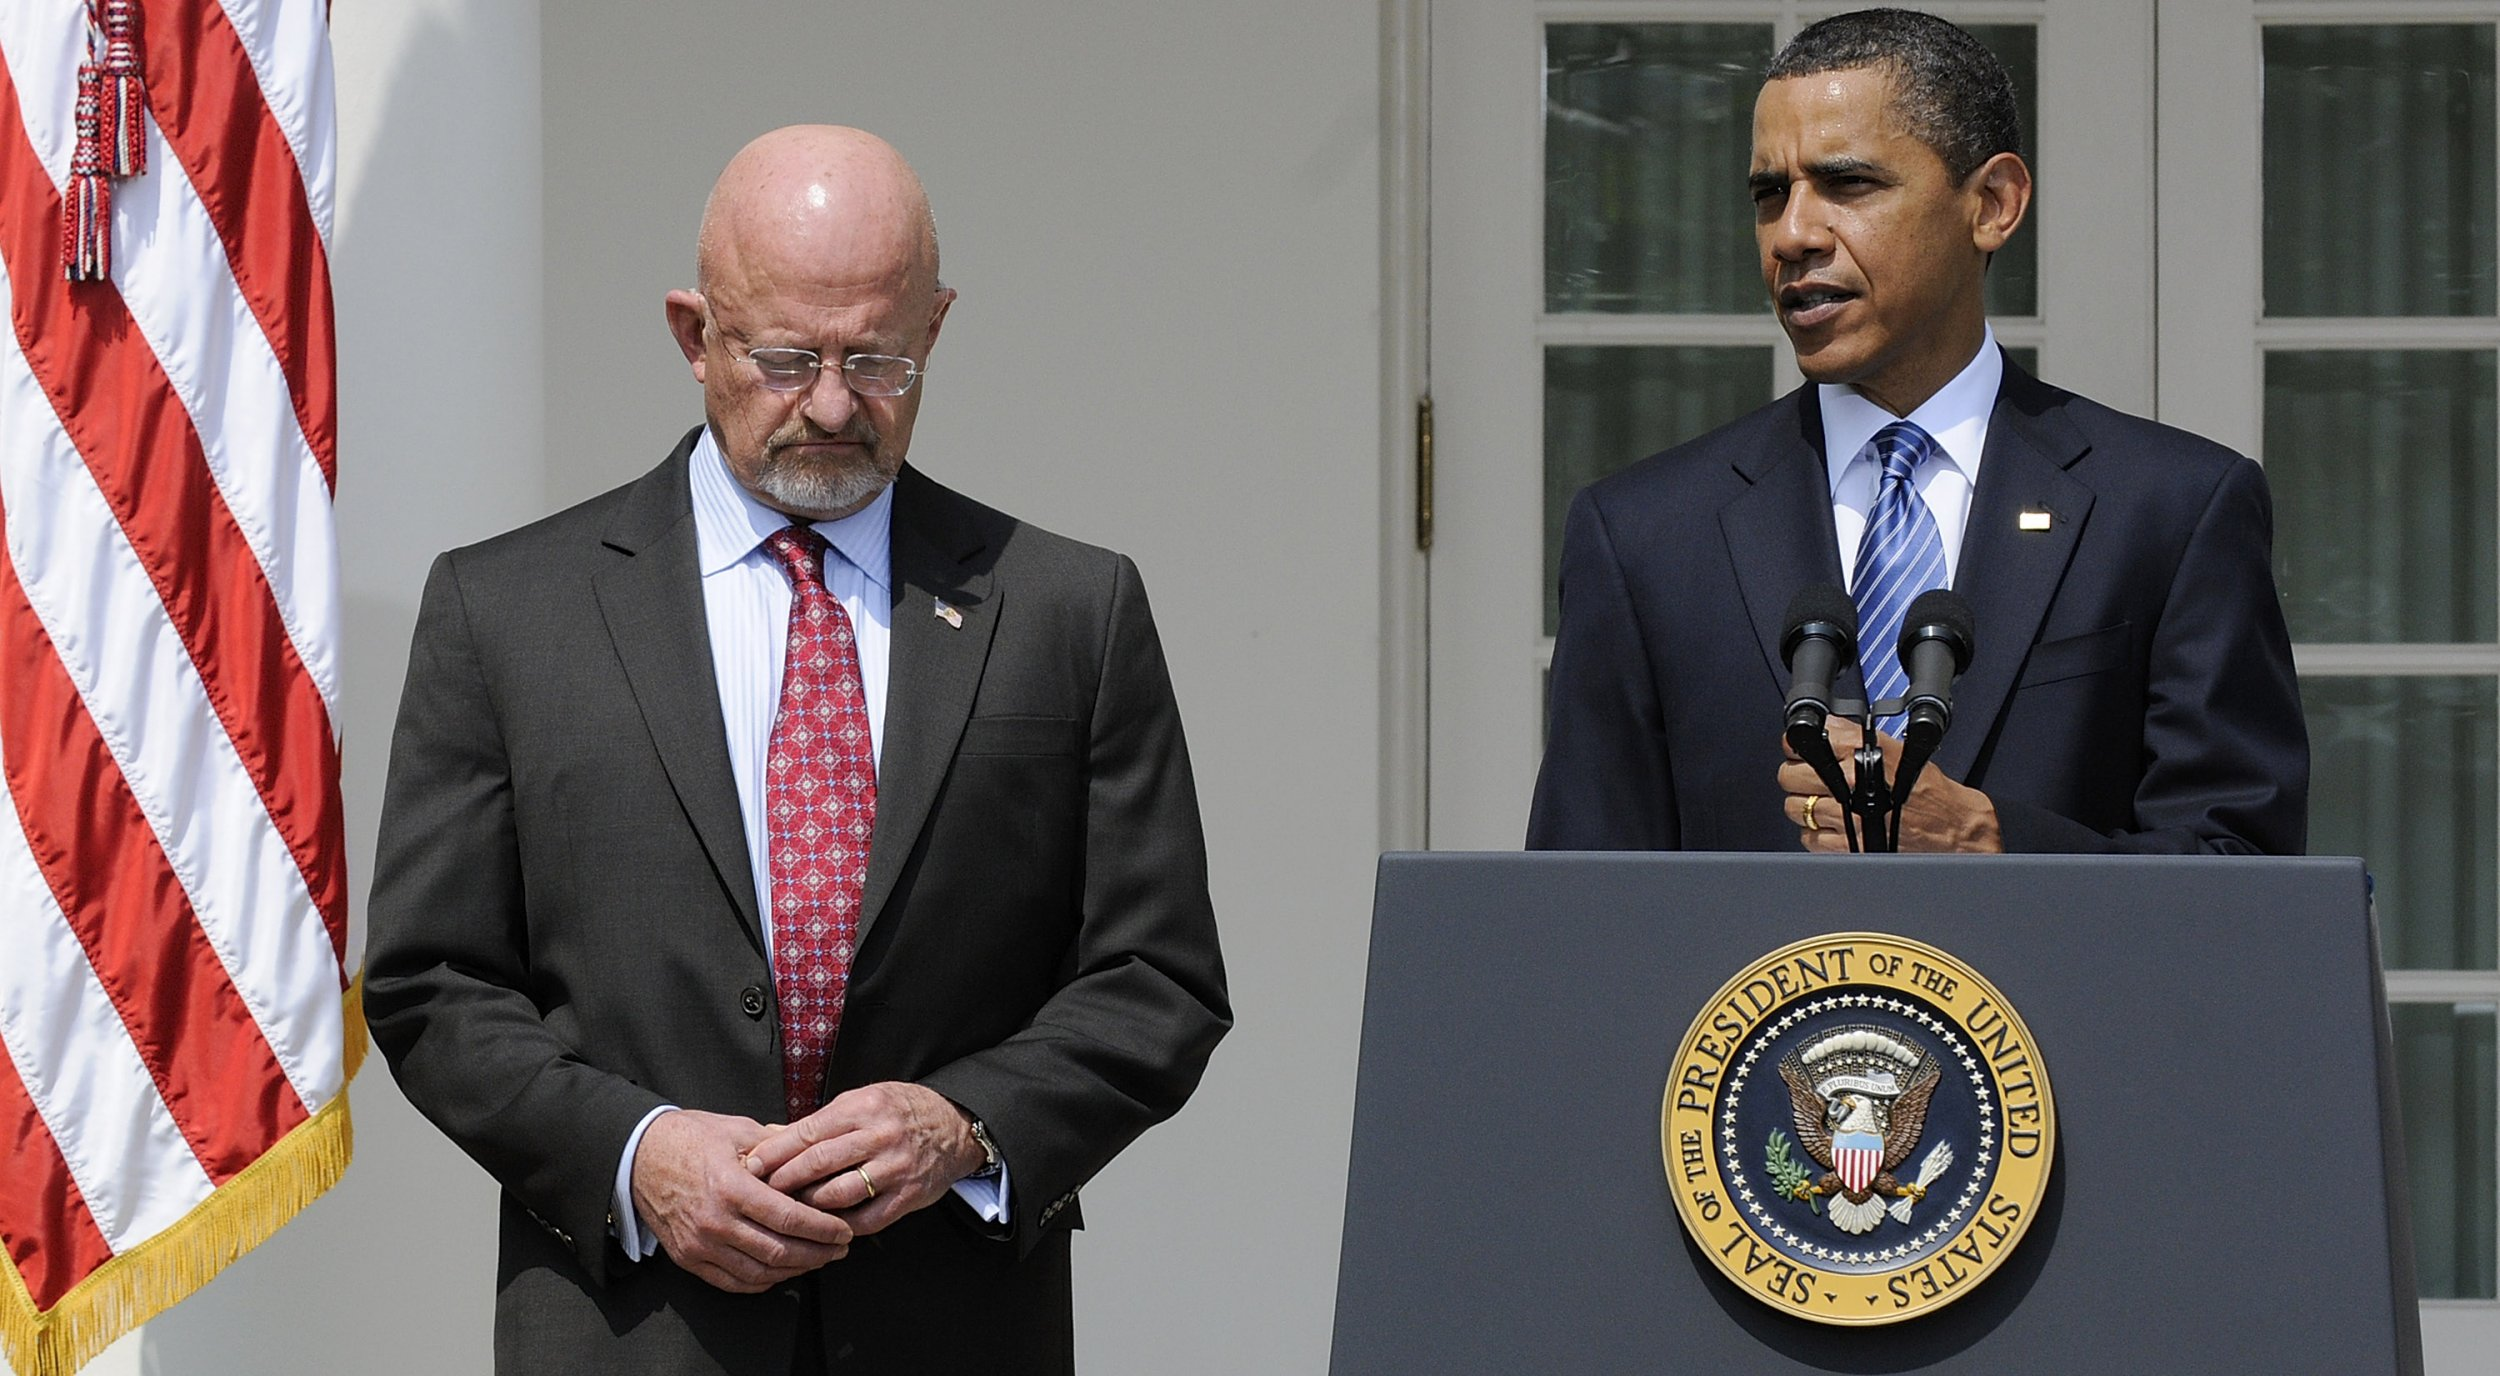 Obama Administration Actually Made Staff Take Lie Detector Tests to Stop Leaks